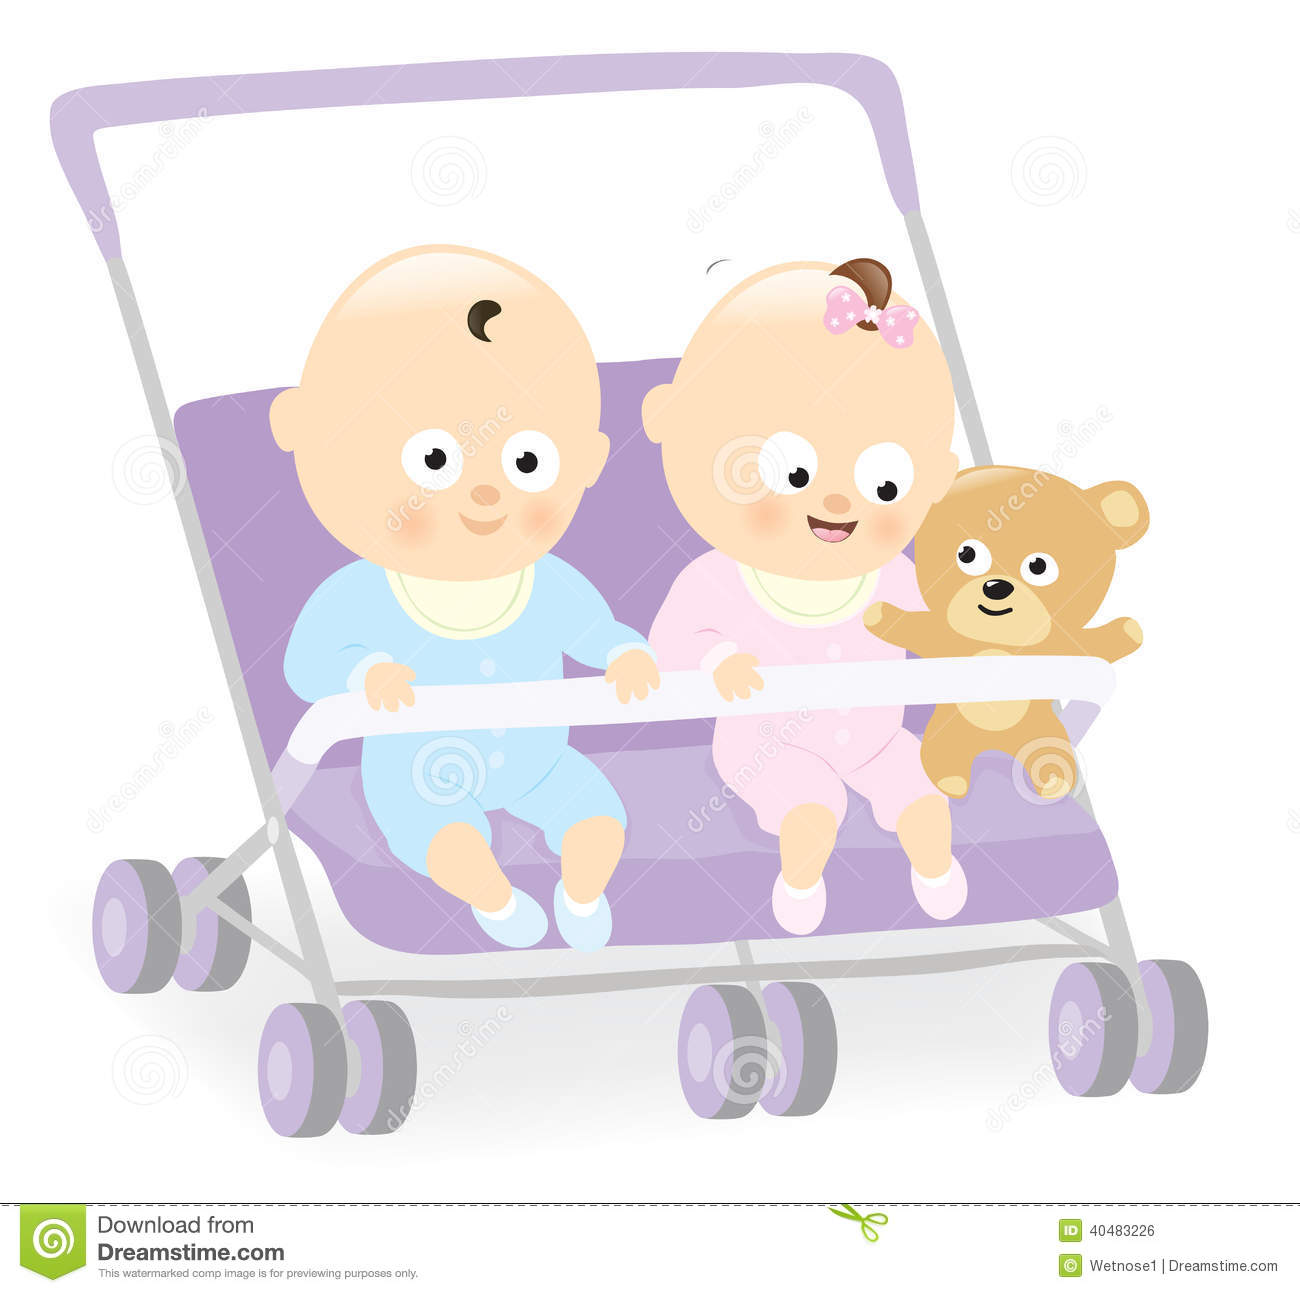 Illustration of baby boy and baby girl with teddy bear in stroller. Baby Stroller Cartoon